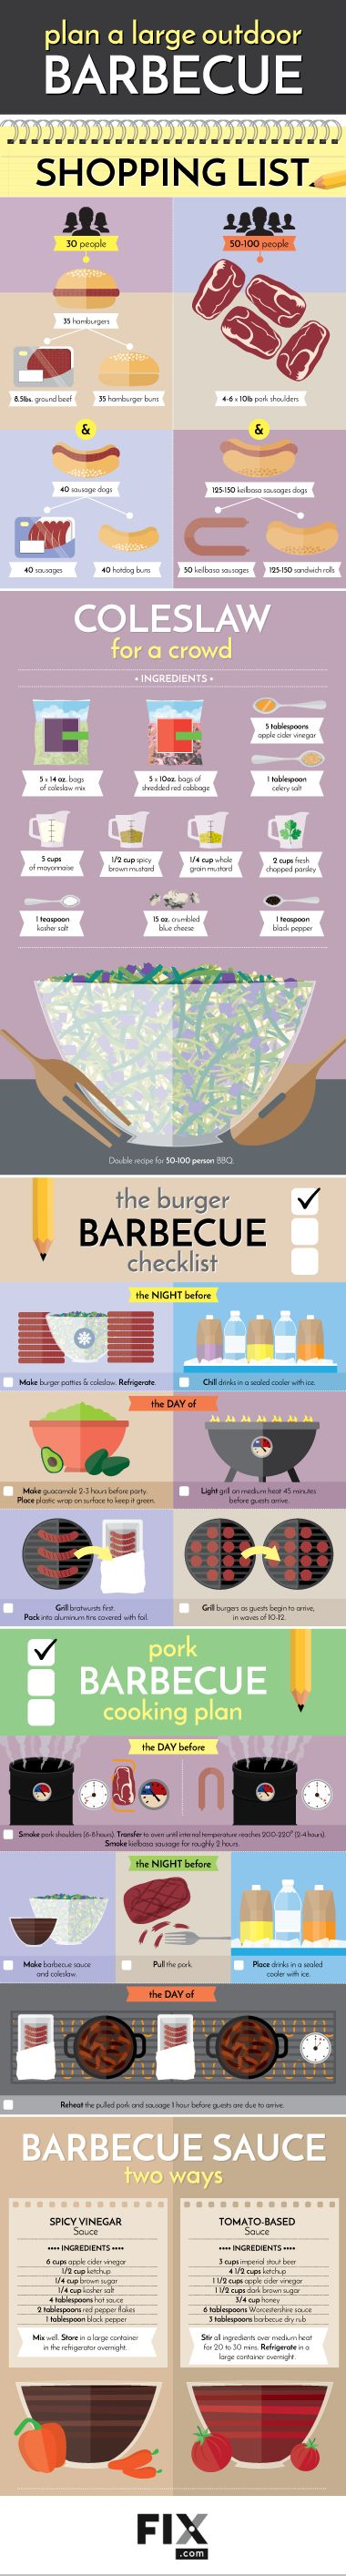 How to Plan a Large Outdoor Cookout: Grilling For a Big ...